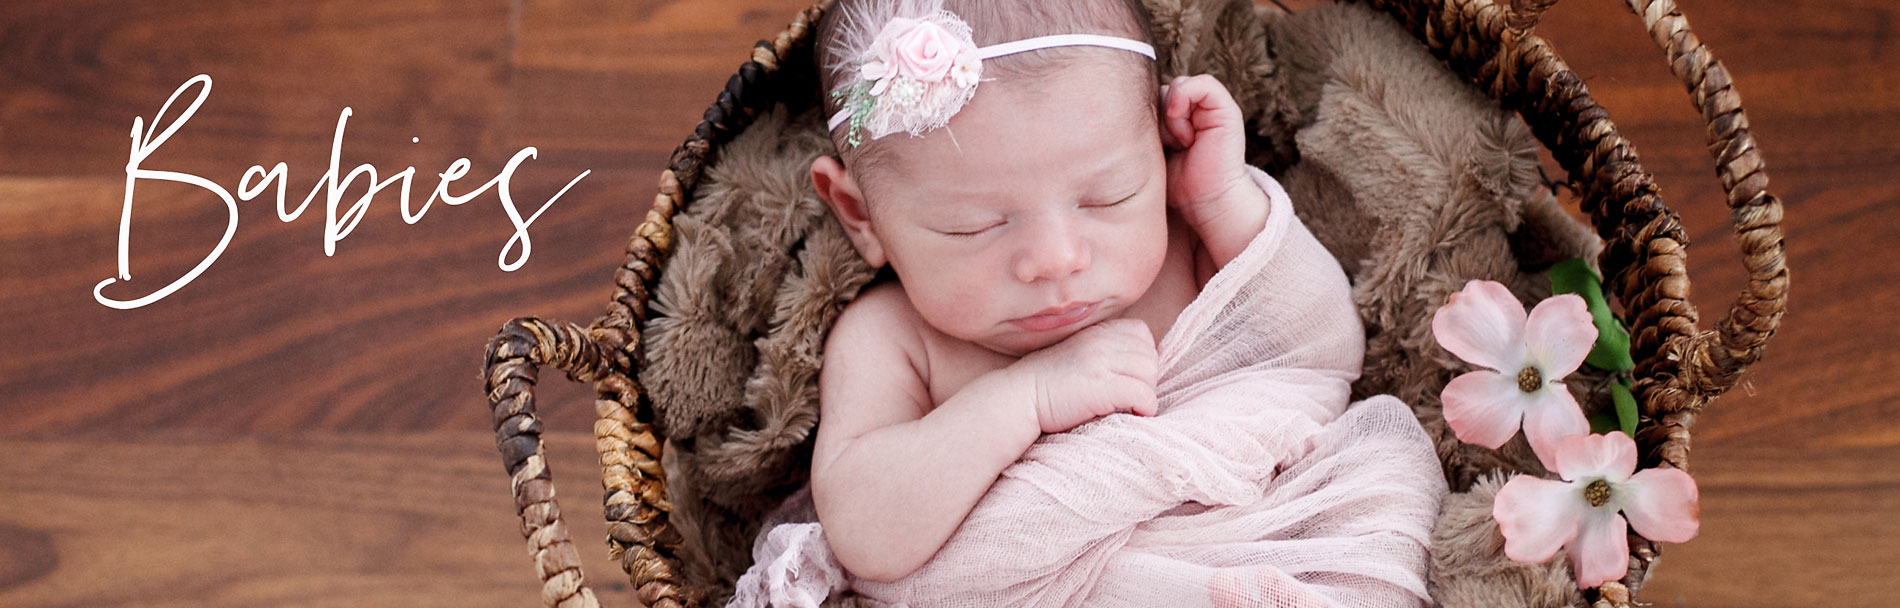 pricing-nicole-chaput-photography-babies-copy.jpg